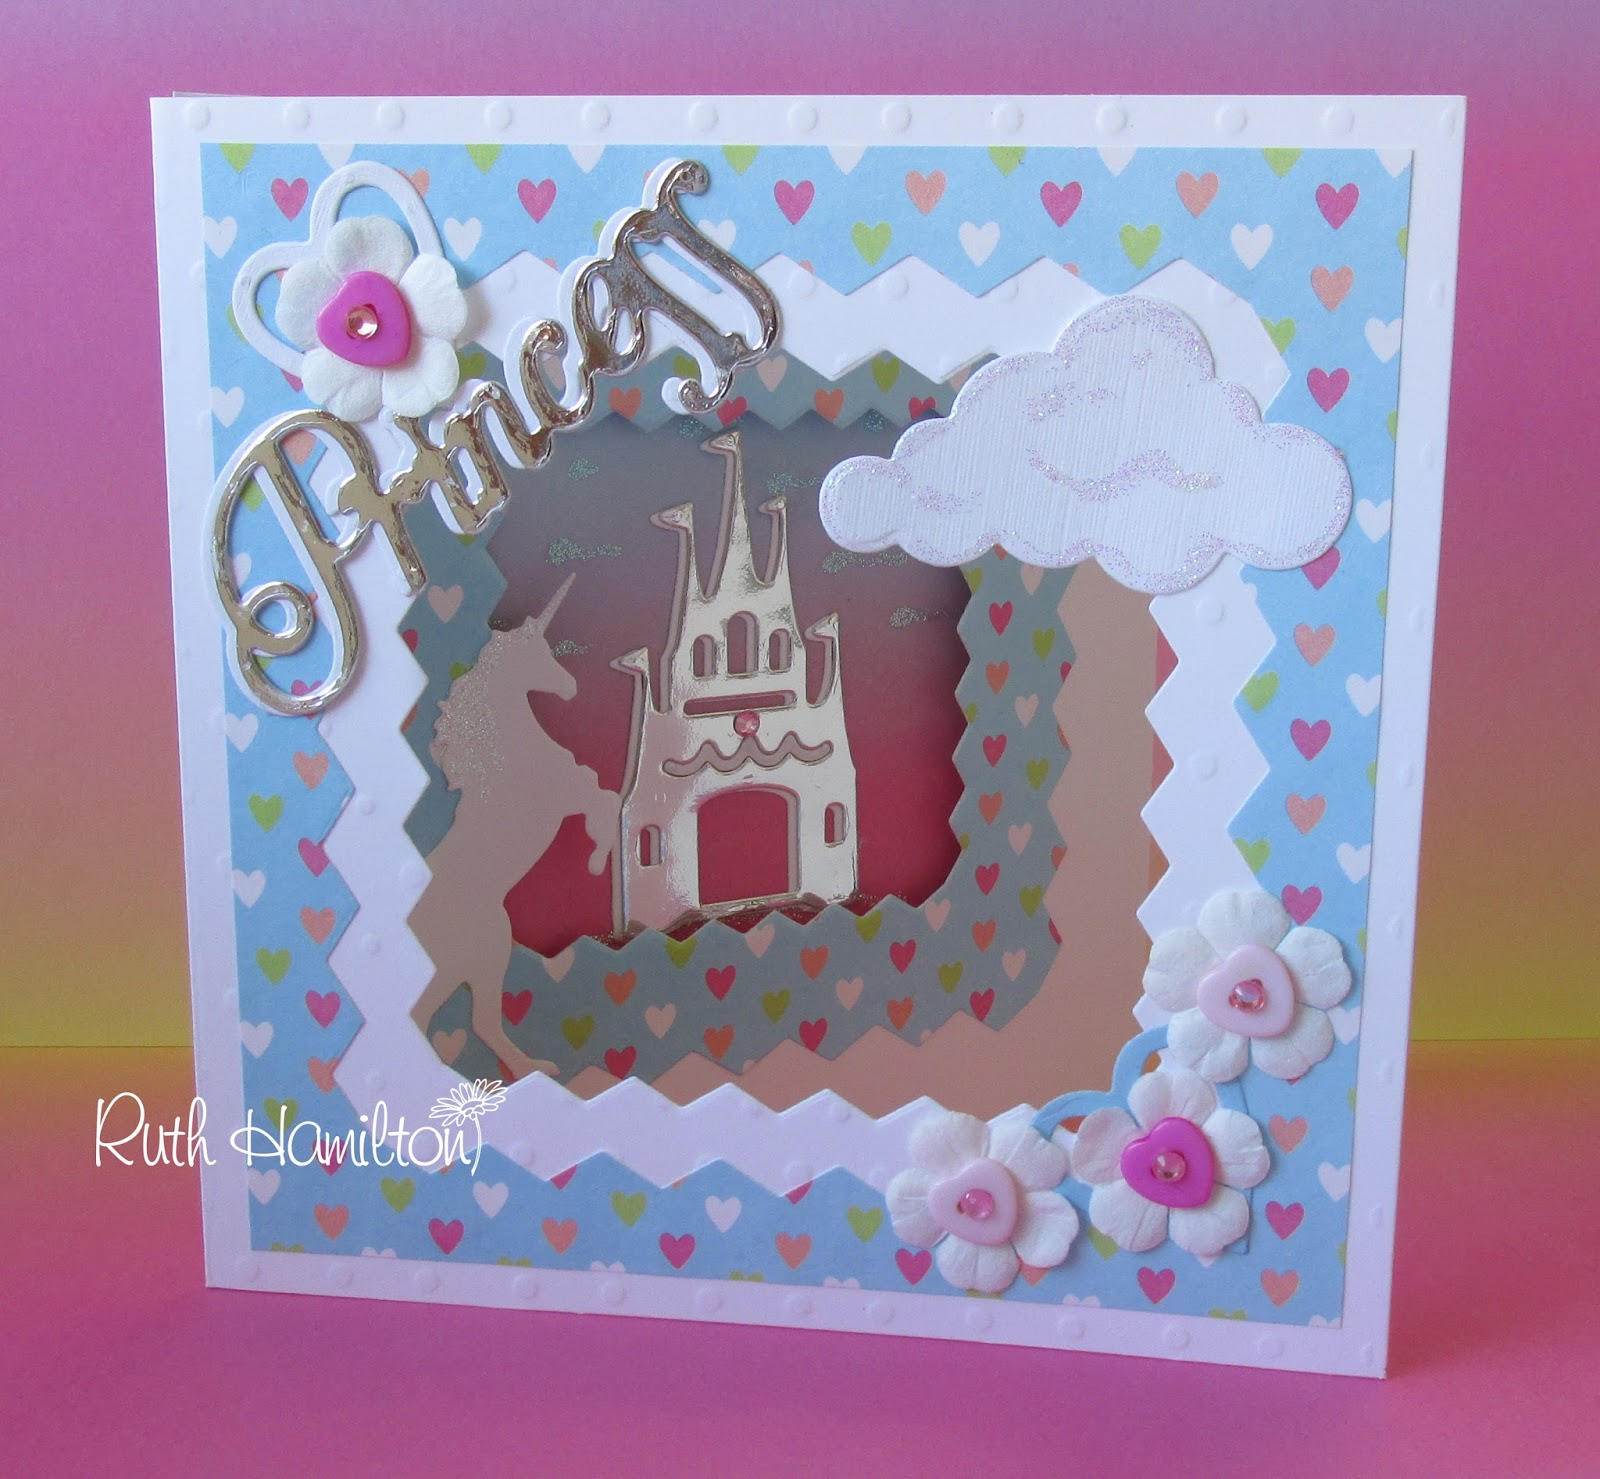 A passion for cards how to make a 3 fold princess card with how to make a 3 fold princess card with trimcrafts simply creative collection and first edition dies kristyandbryce Image collections